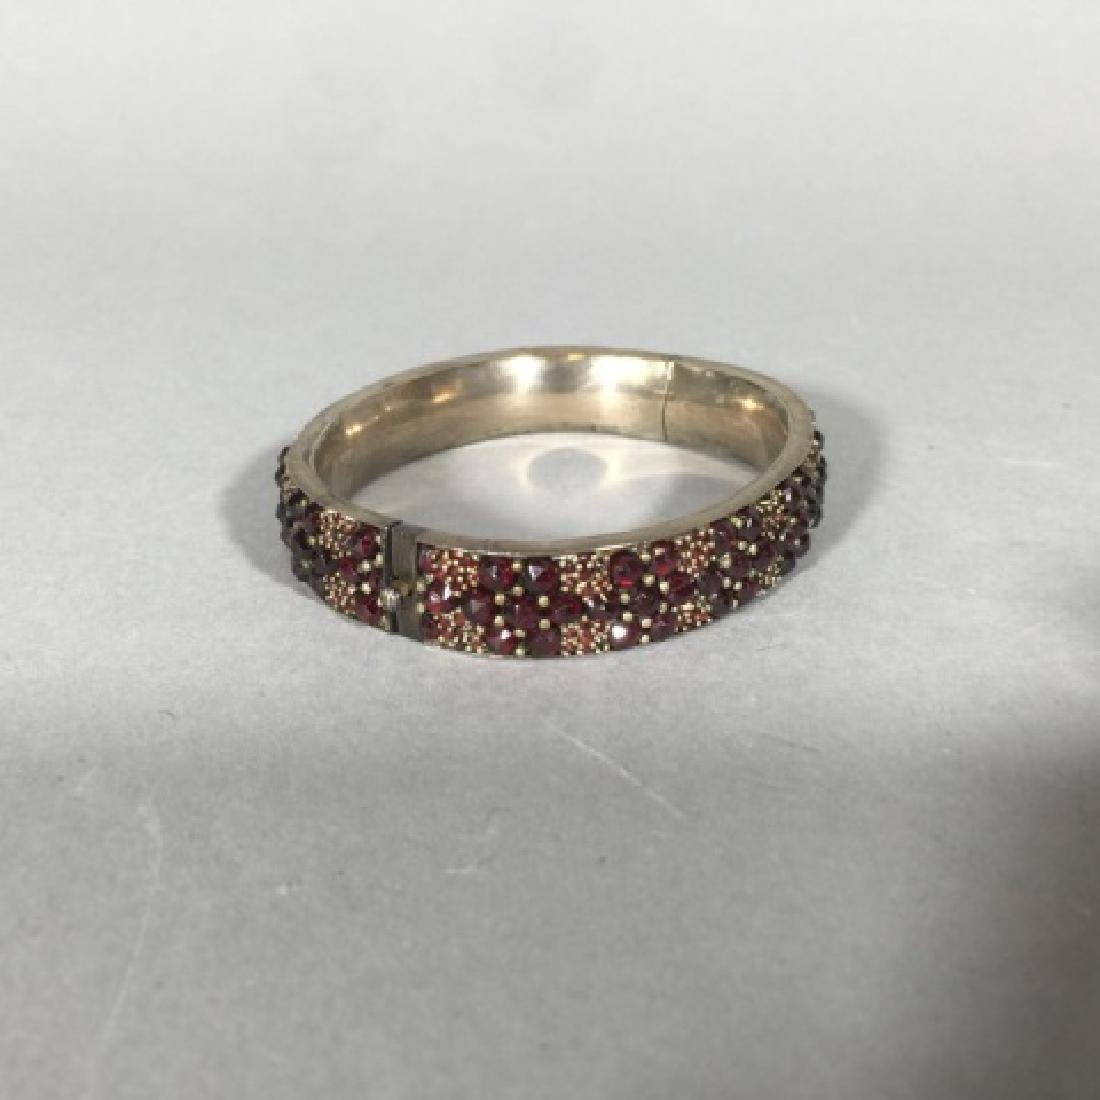 Antique 19th C Rose Cut Garnet Bangle Bracelet - 6